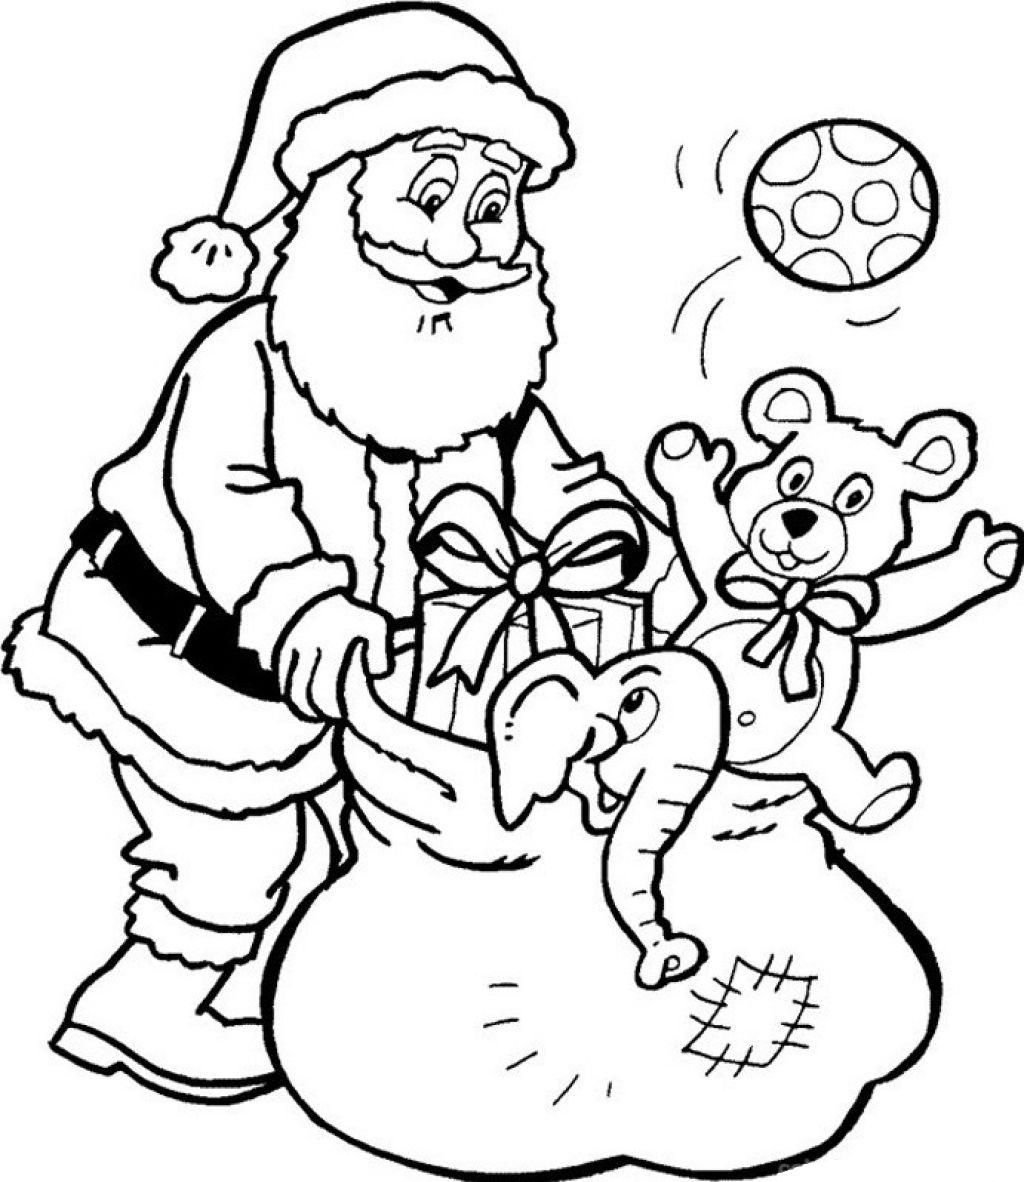 Santa Claus Coloring Book Pages With For Toddlers Childrens Merry Christmas